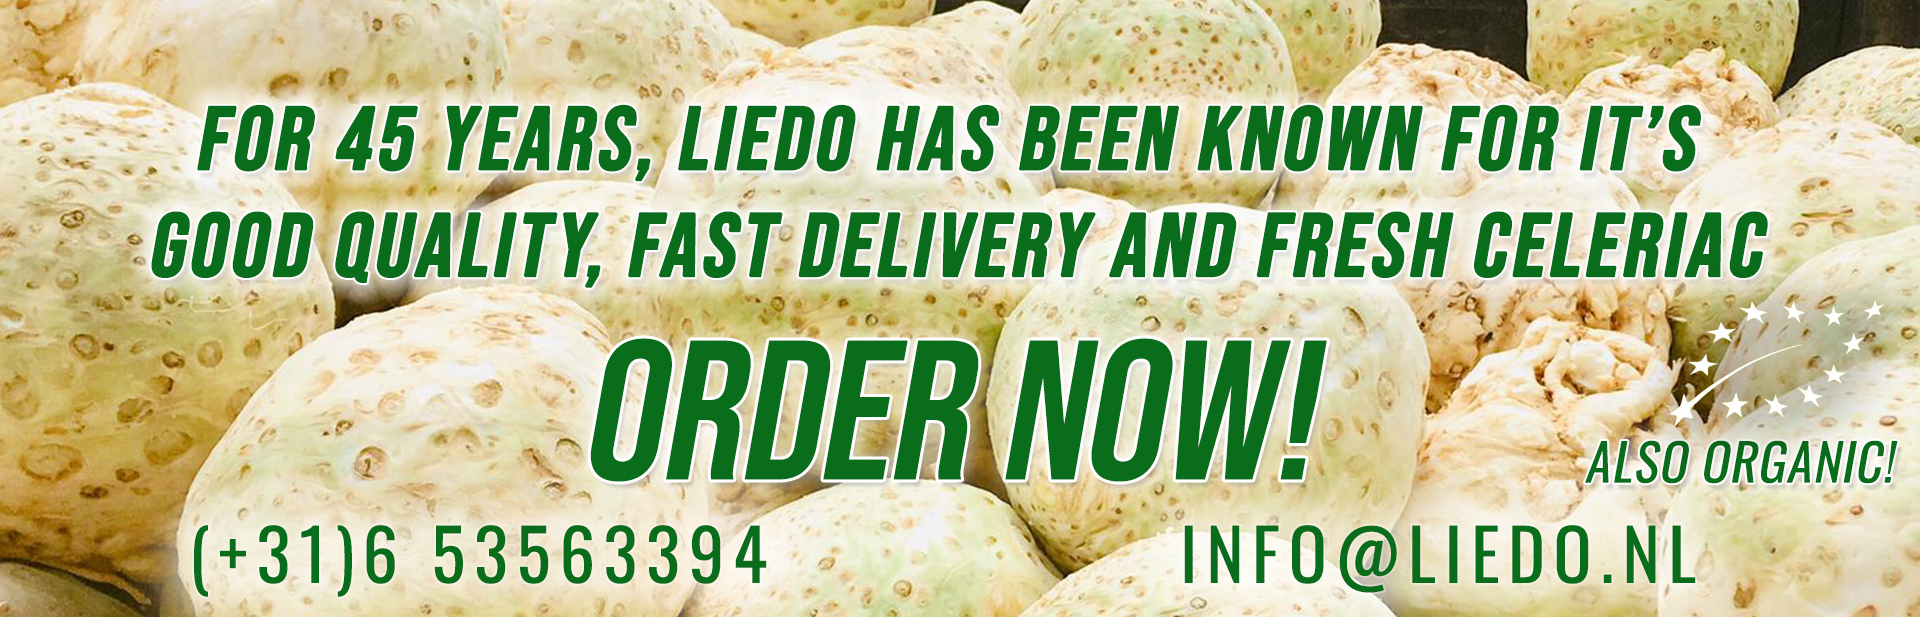 liedo-home-knollen-cover-english-The-Celeriac-Packaging-Specialist